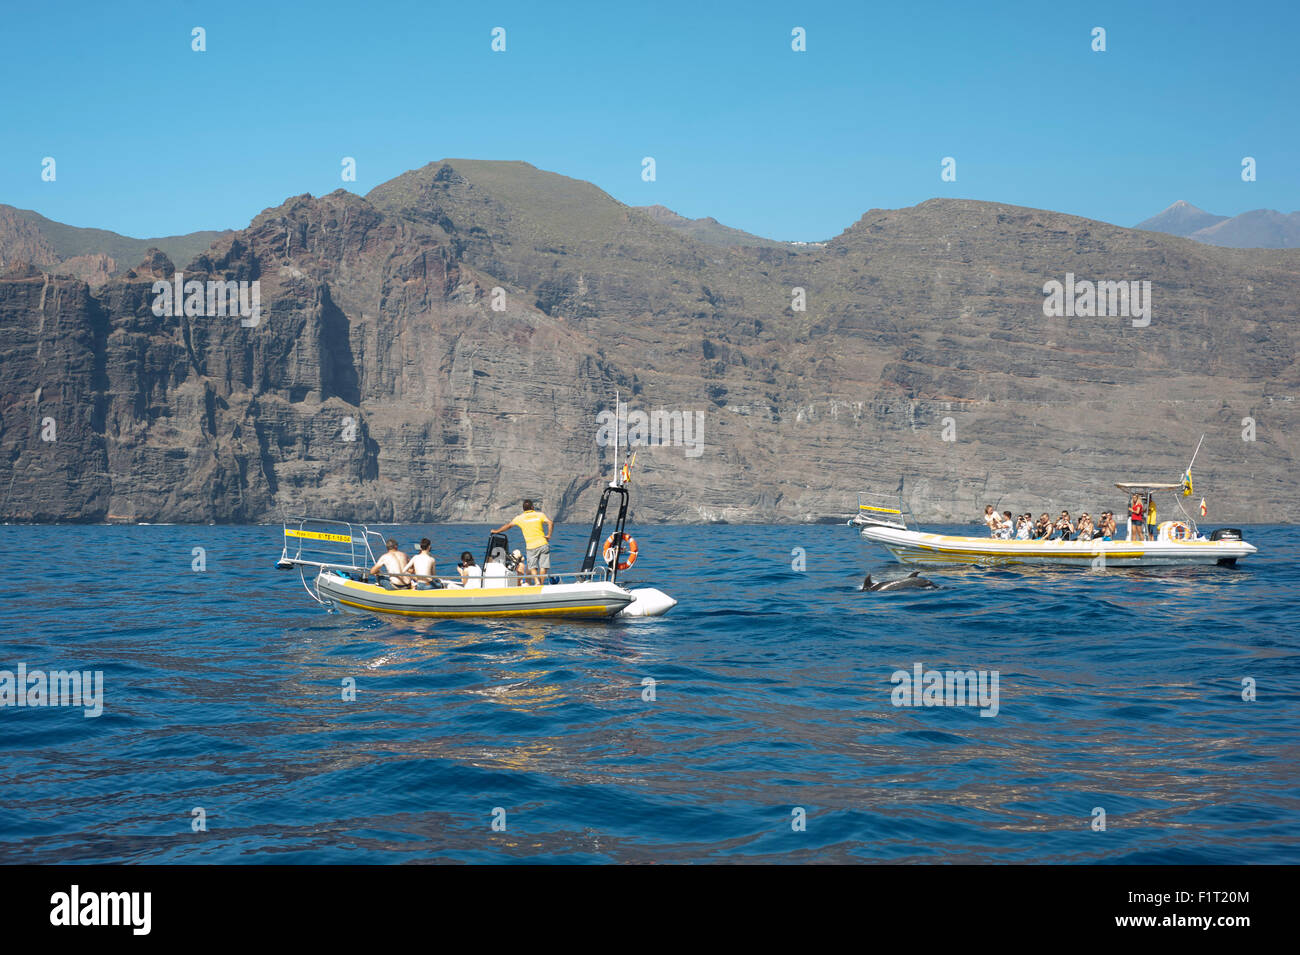 dolphin watching off the coast of Tenerife, Spain with tourists in boats on the sea - Stock Image